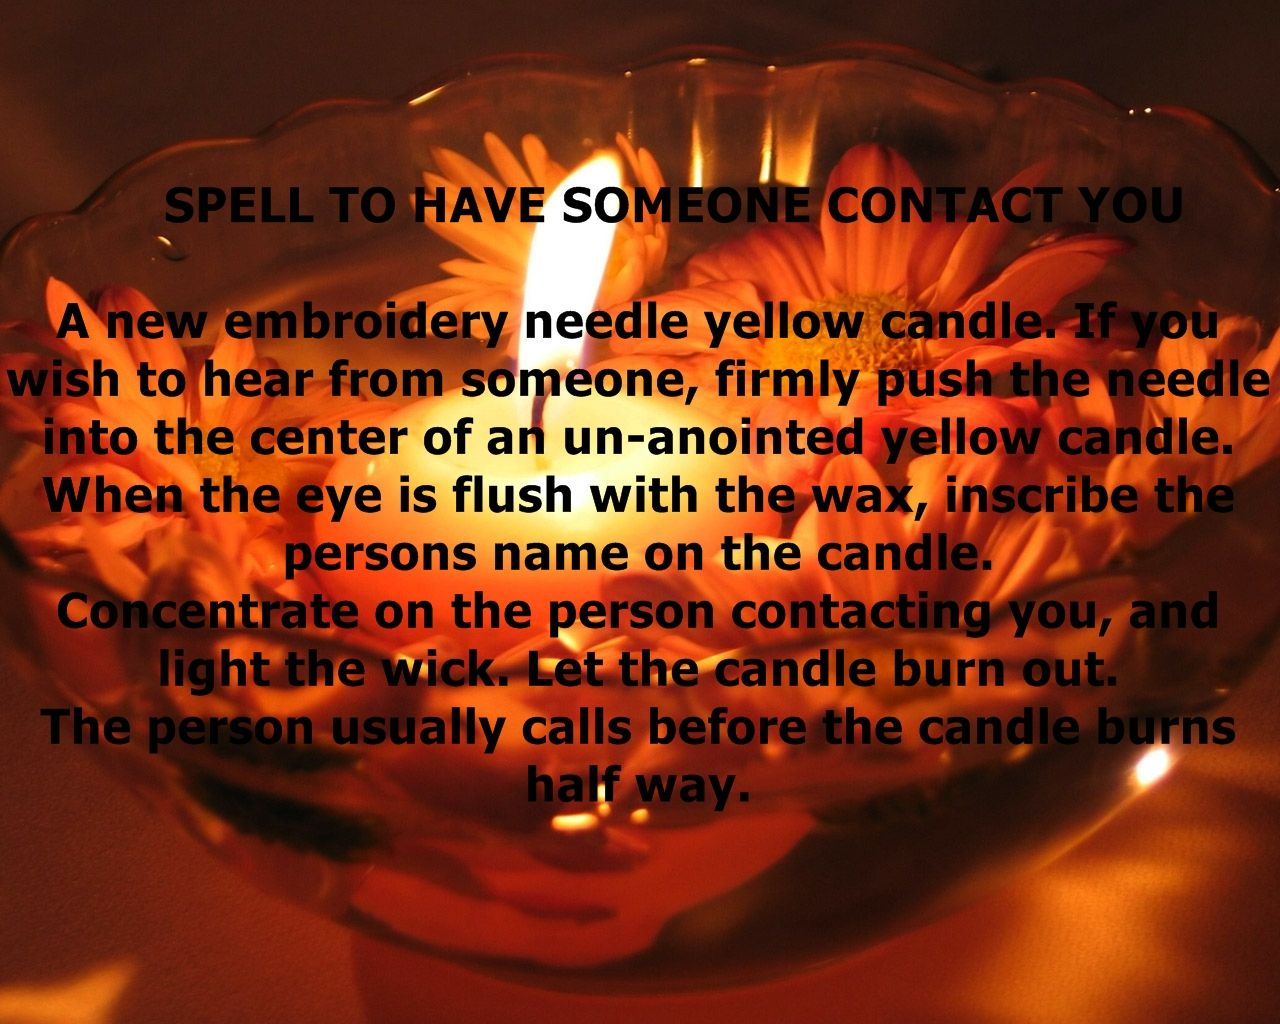 Spell to have someone contact you pagan wiccan witch shaman